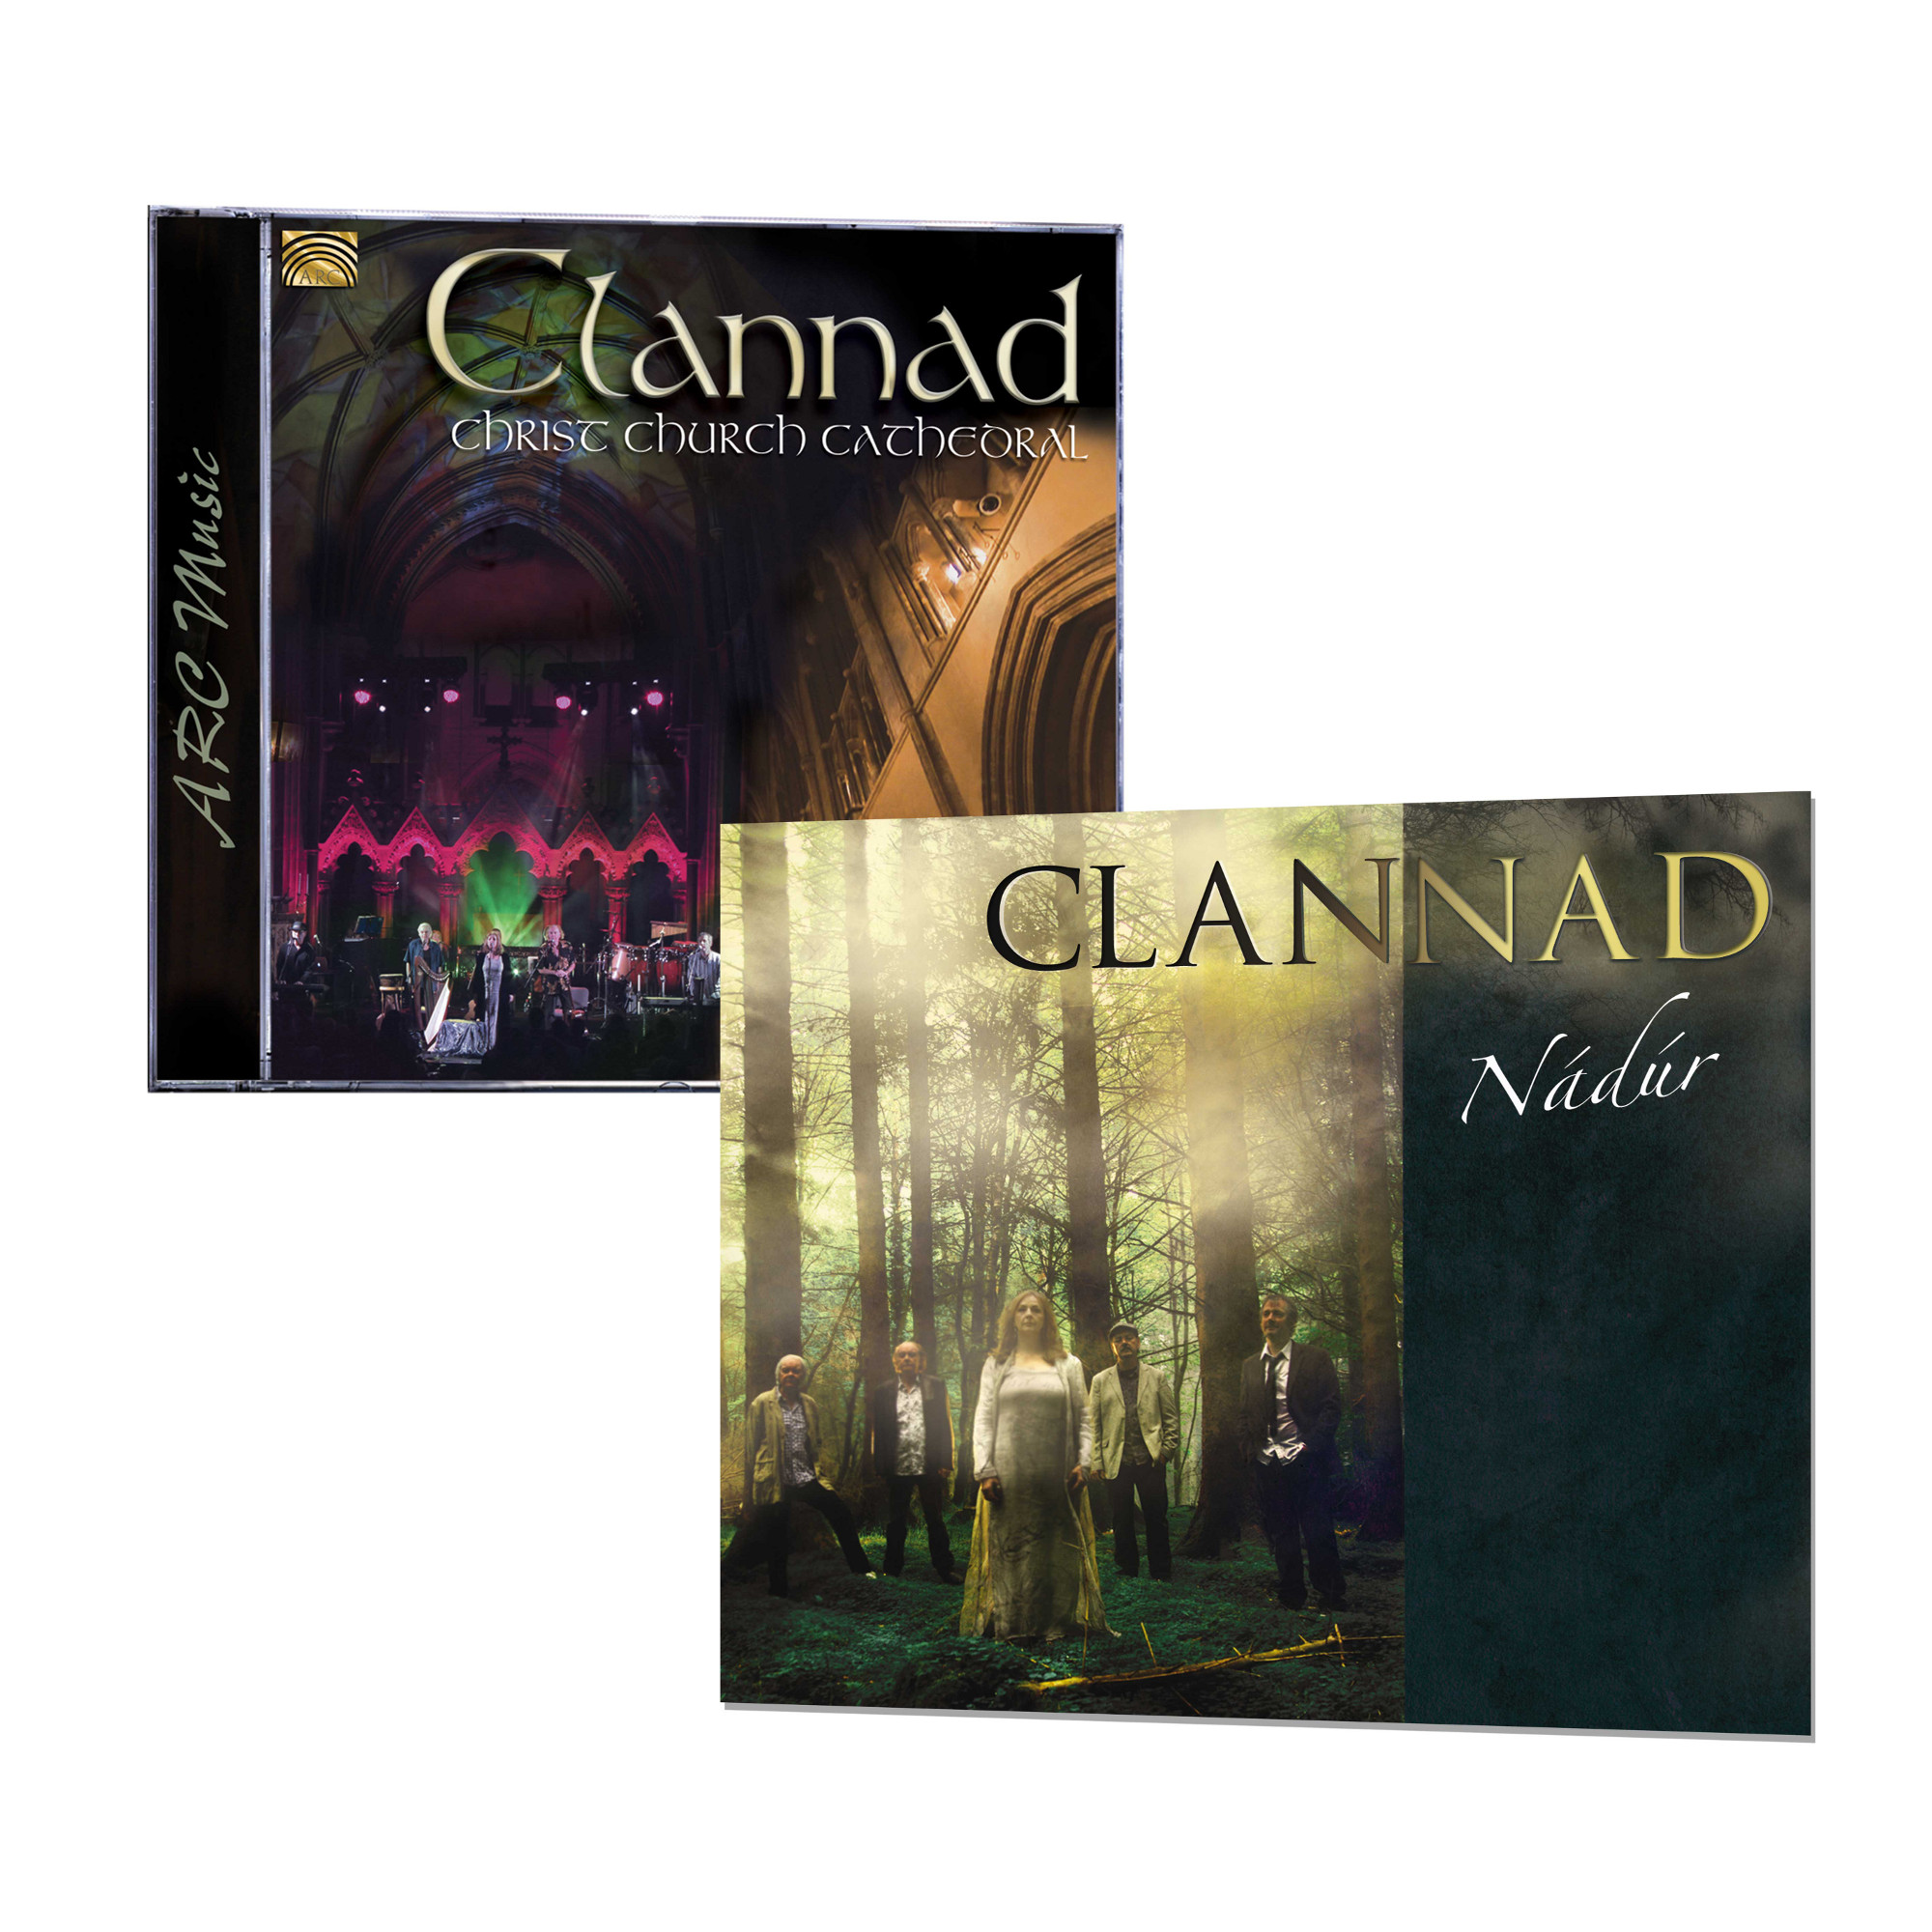 Clannad Clannad CD Collection